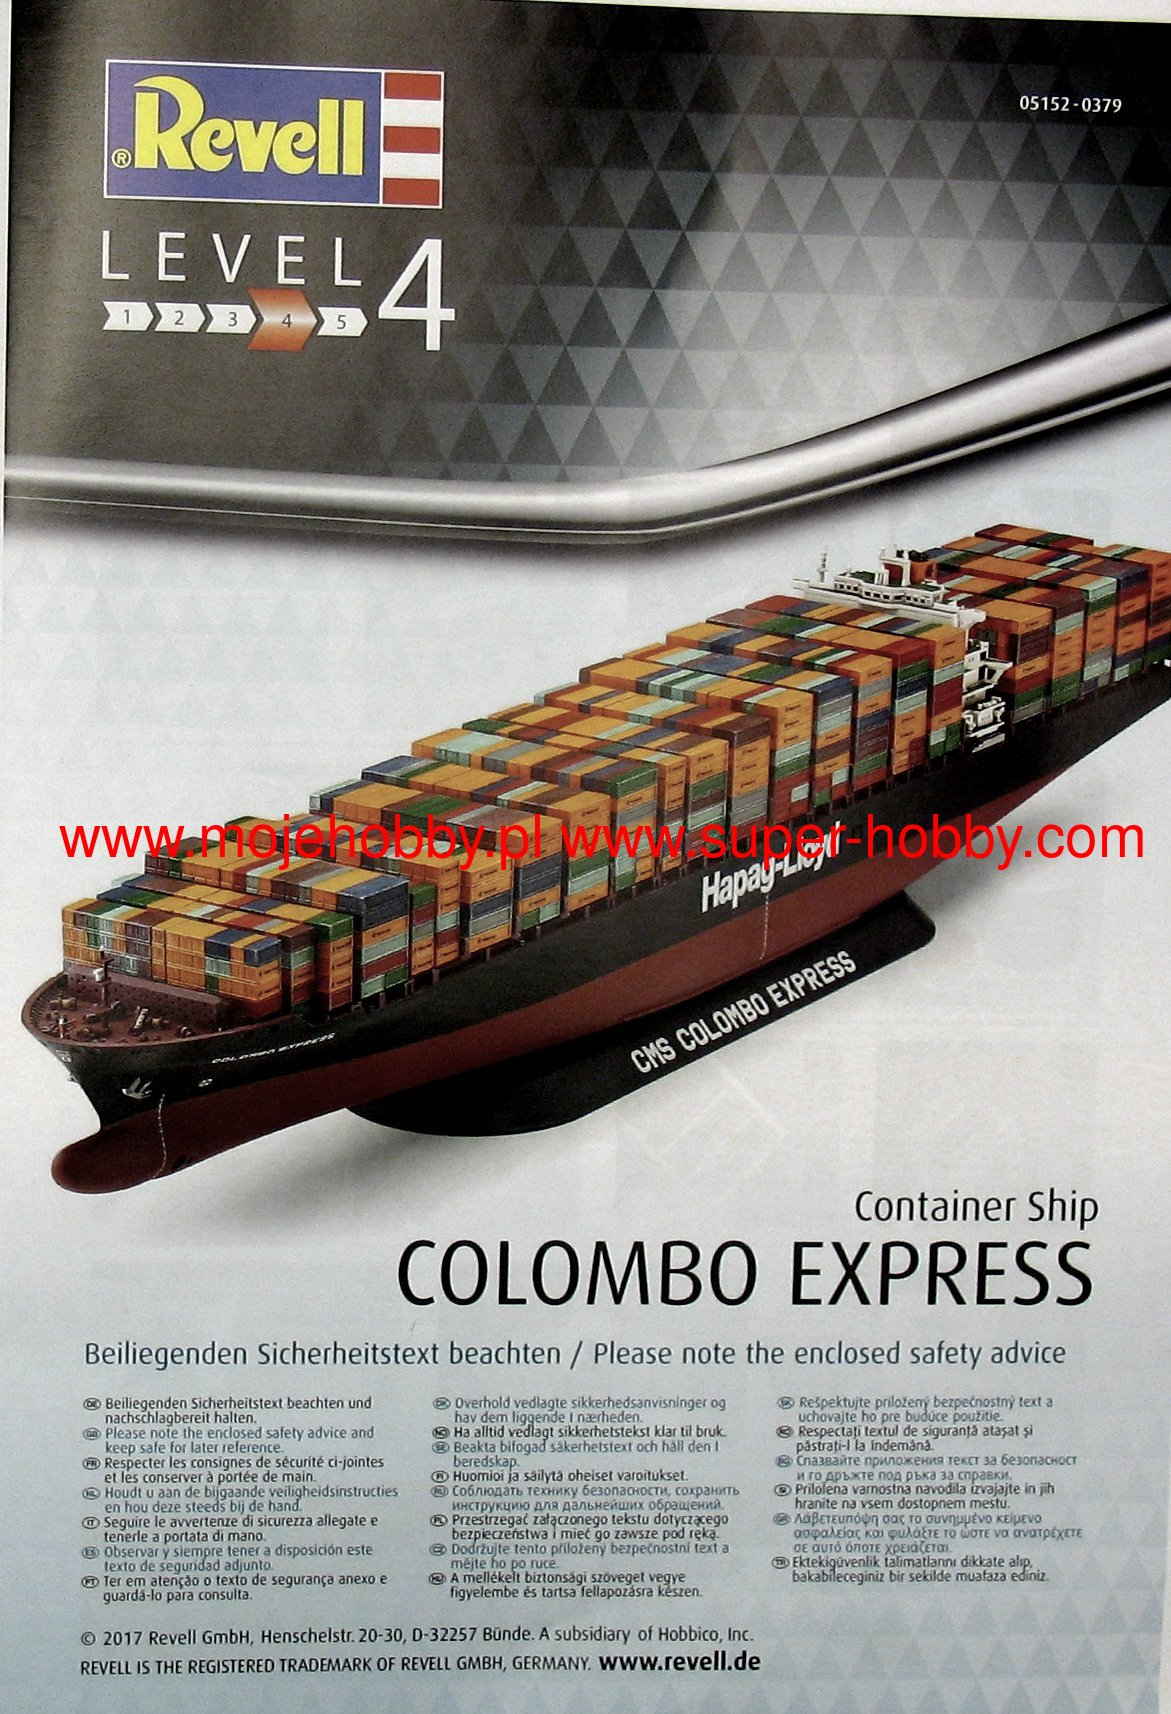 Colombo Scale Container Ship Colombo Express Revell 05152